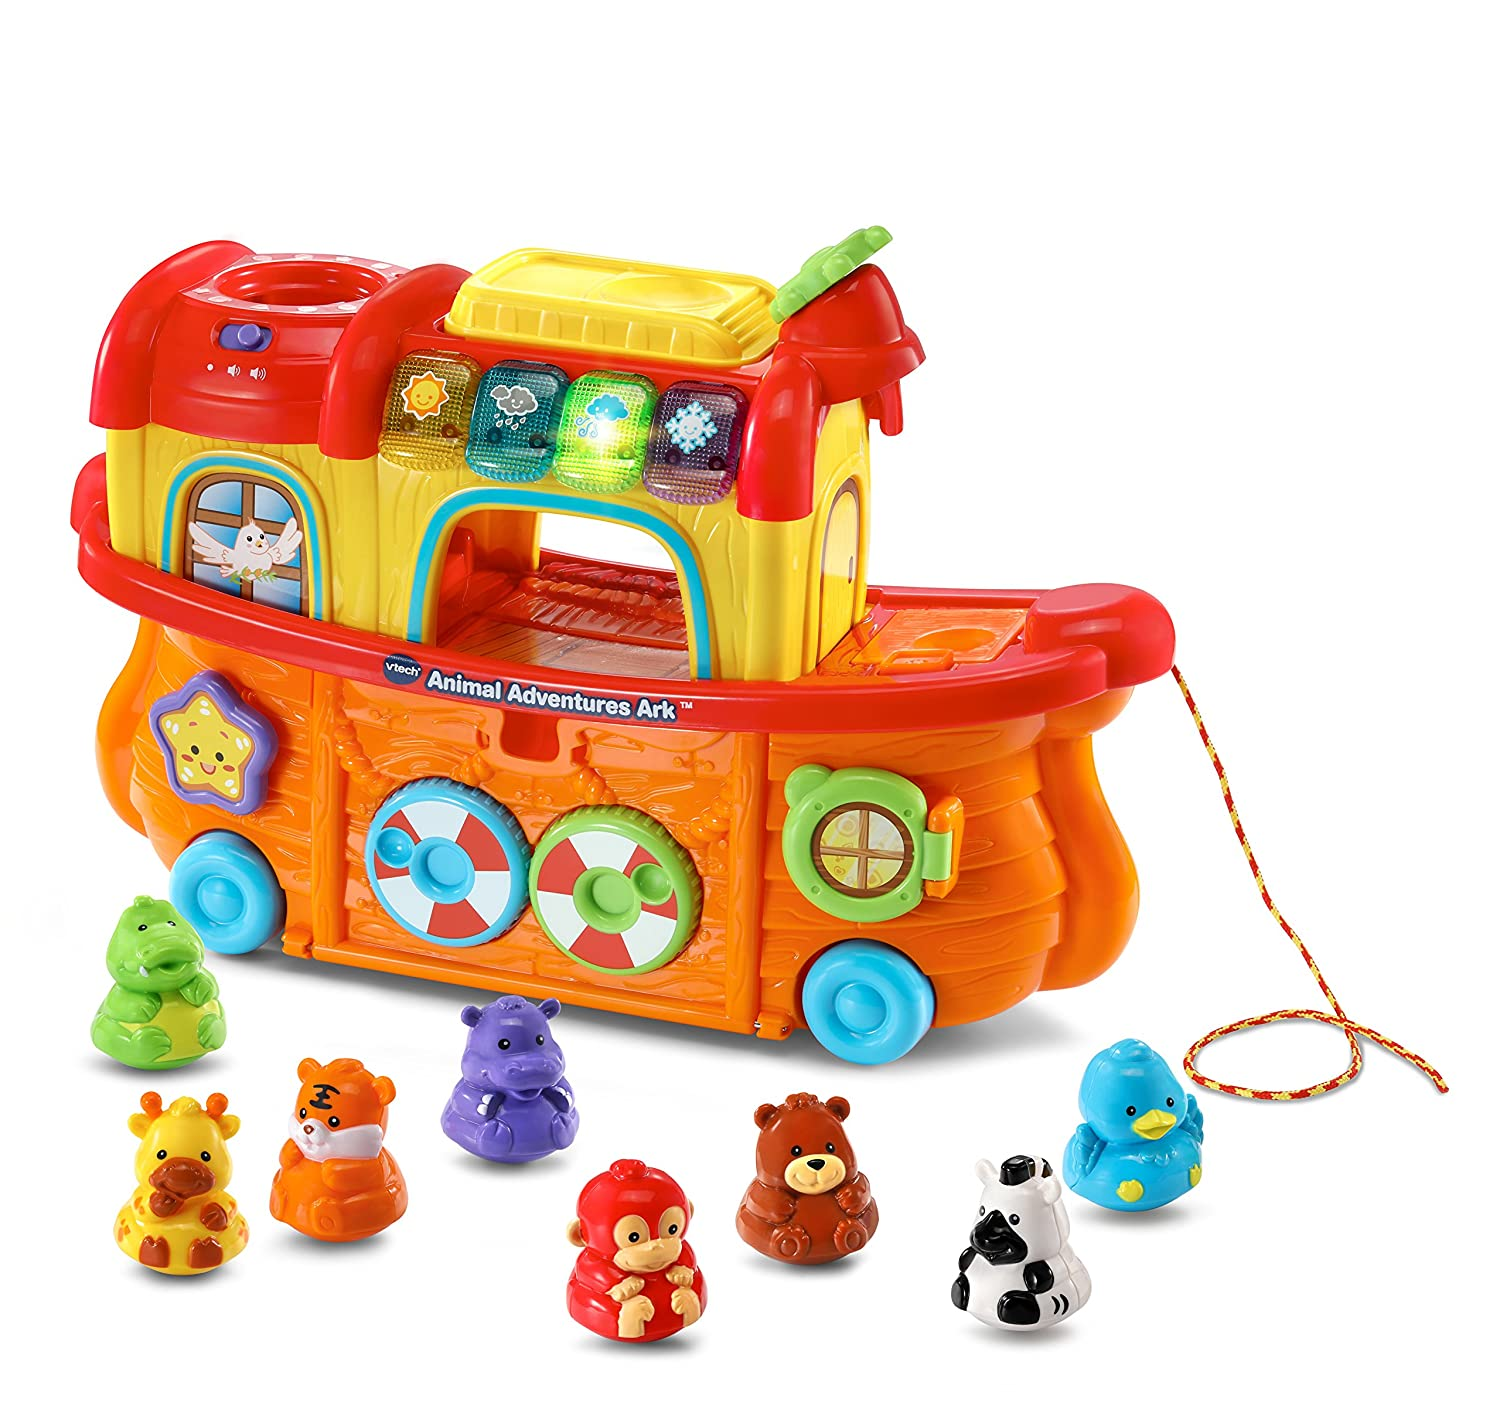 VTech Animal Adventures Ark With Animas